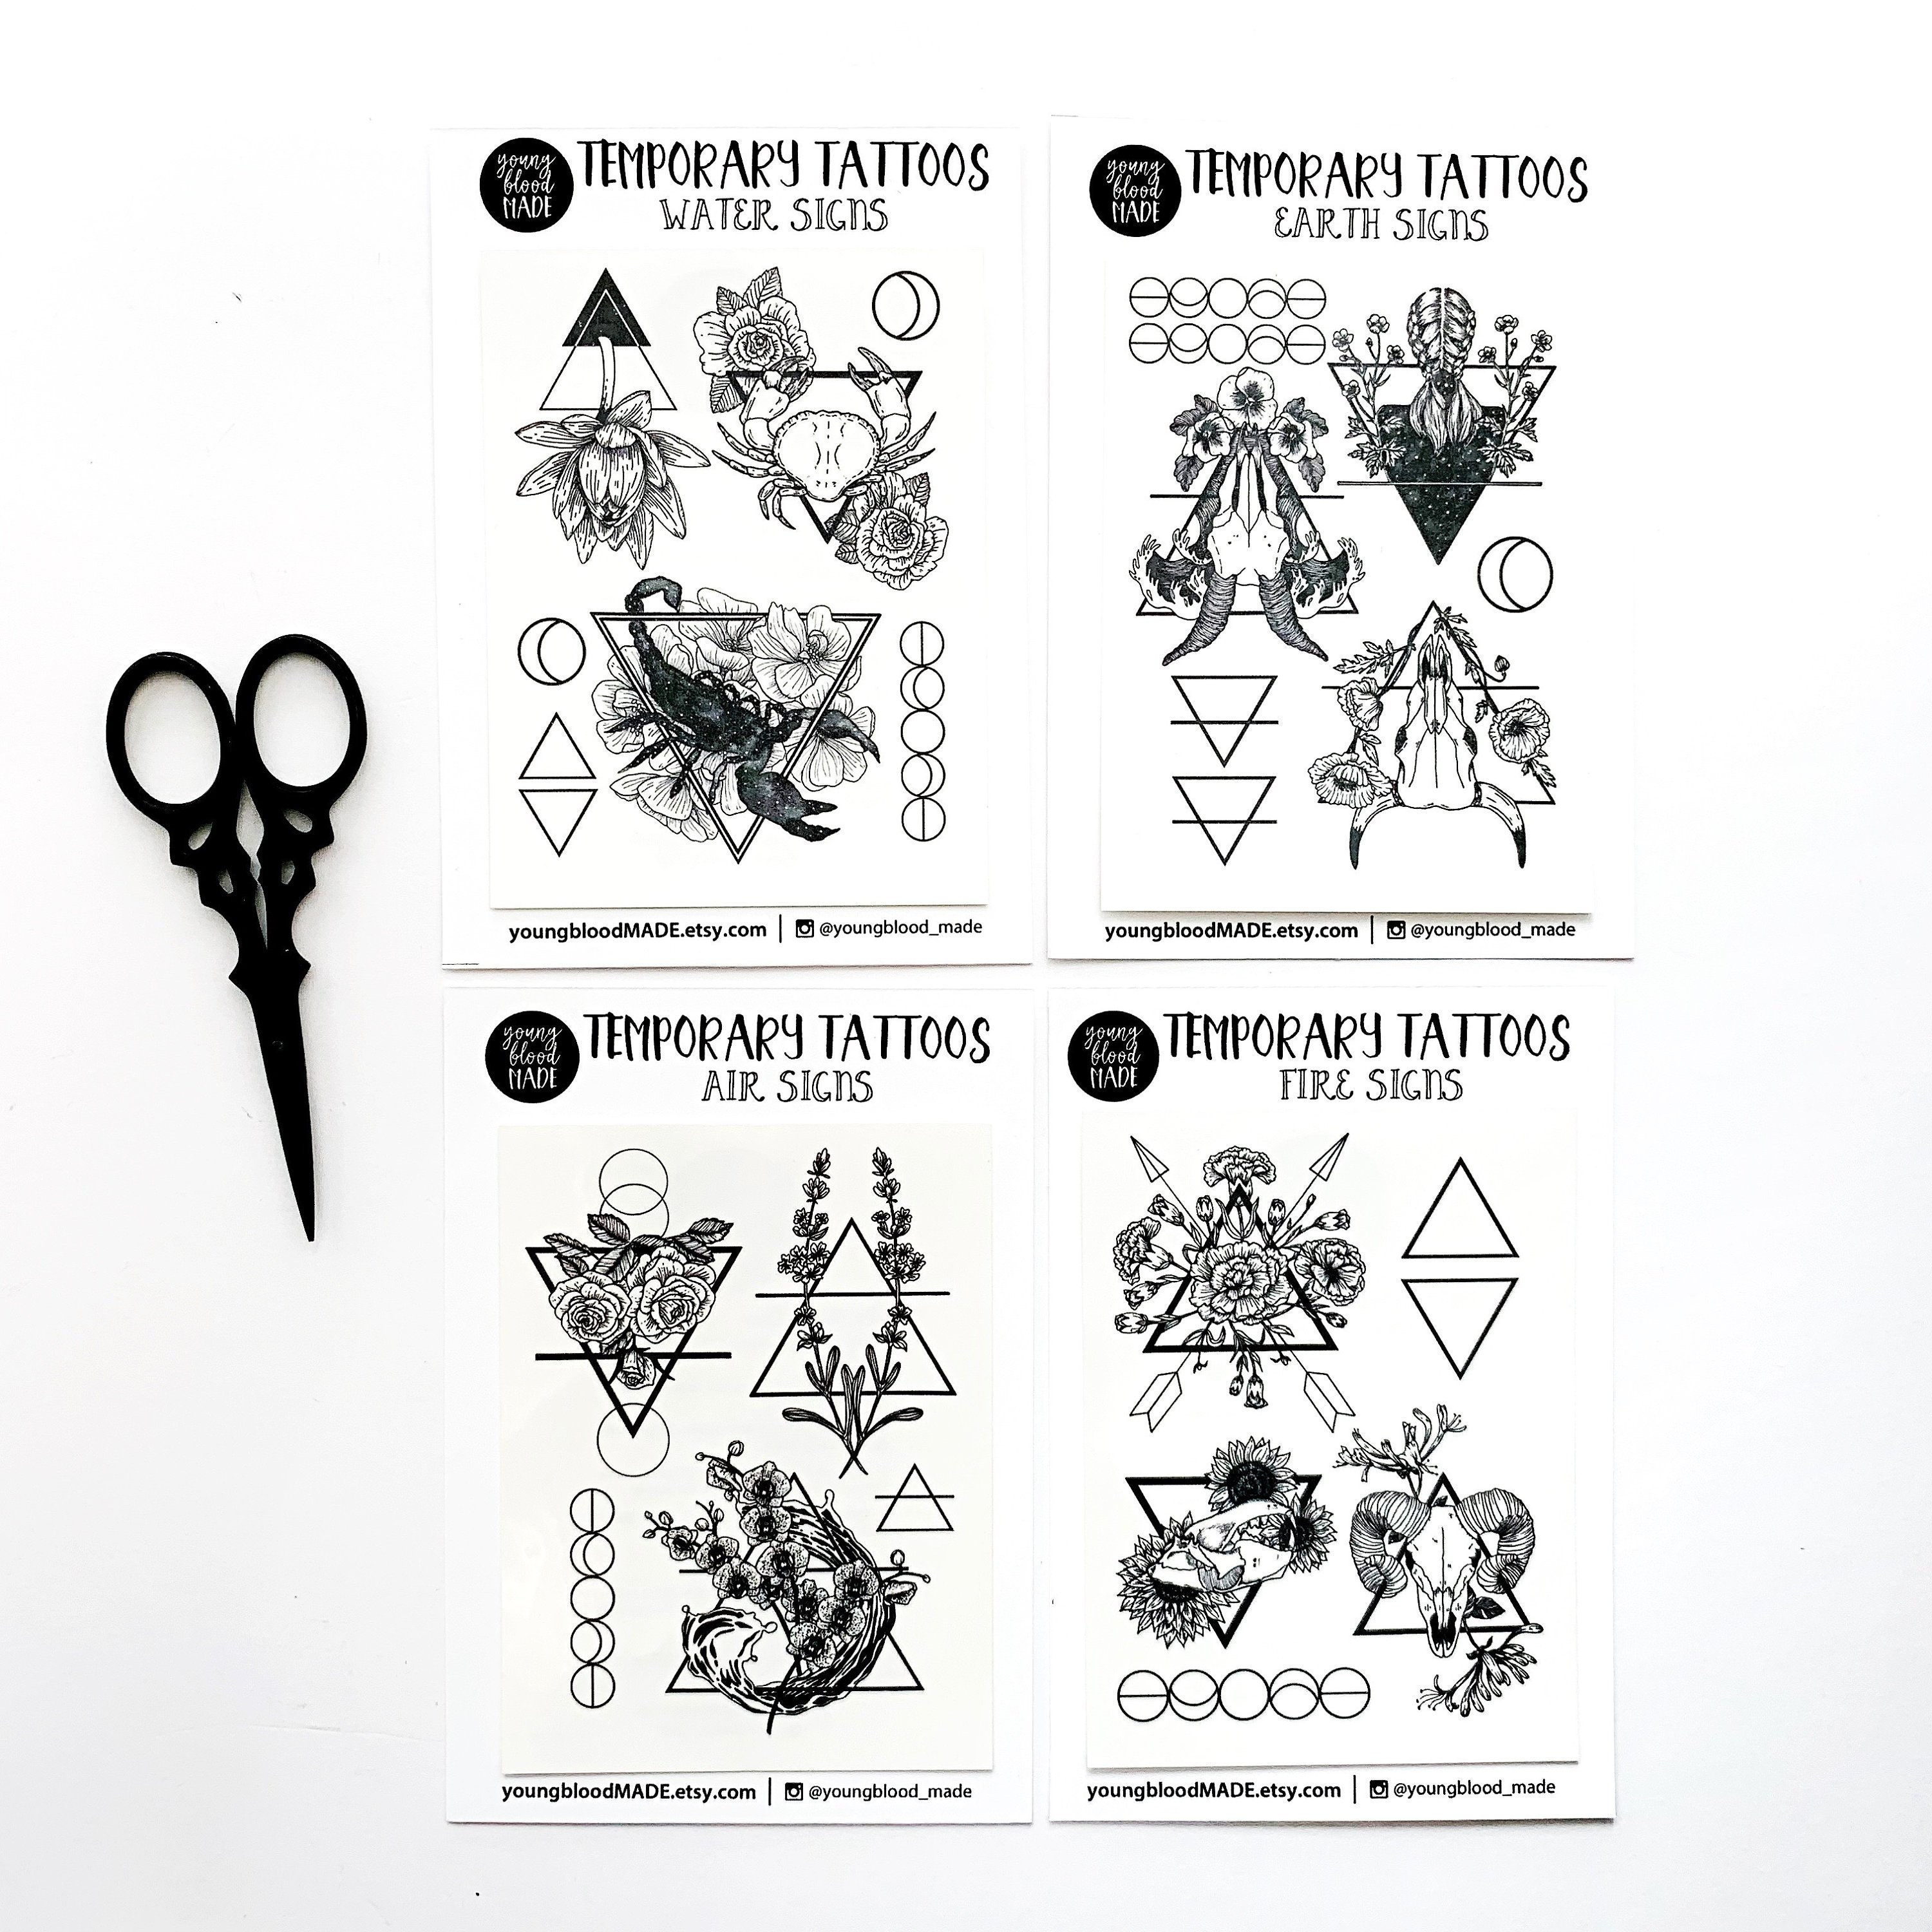 Henna Tattoo Zodiac Signs: Zodiac Astrology Signs Temporary Tattoos Earth Signs Water